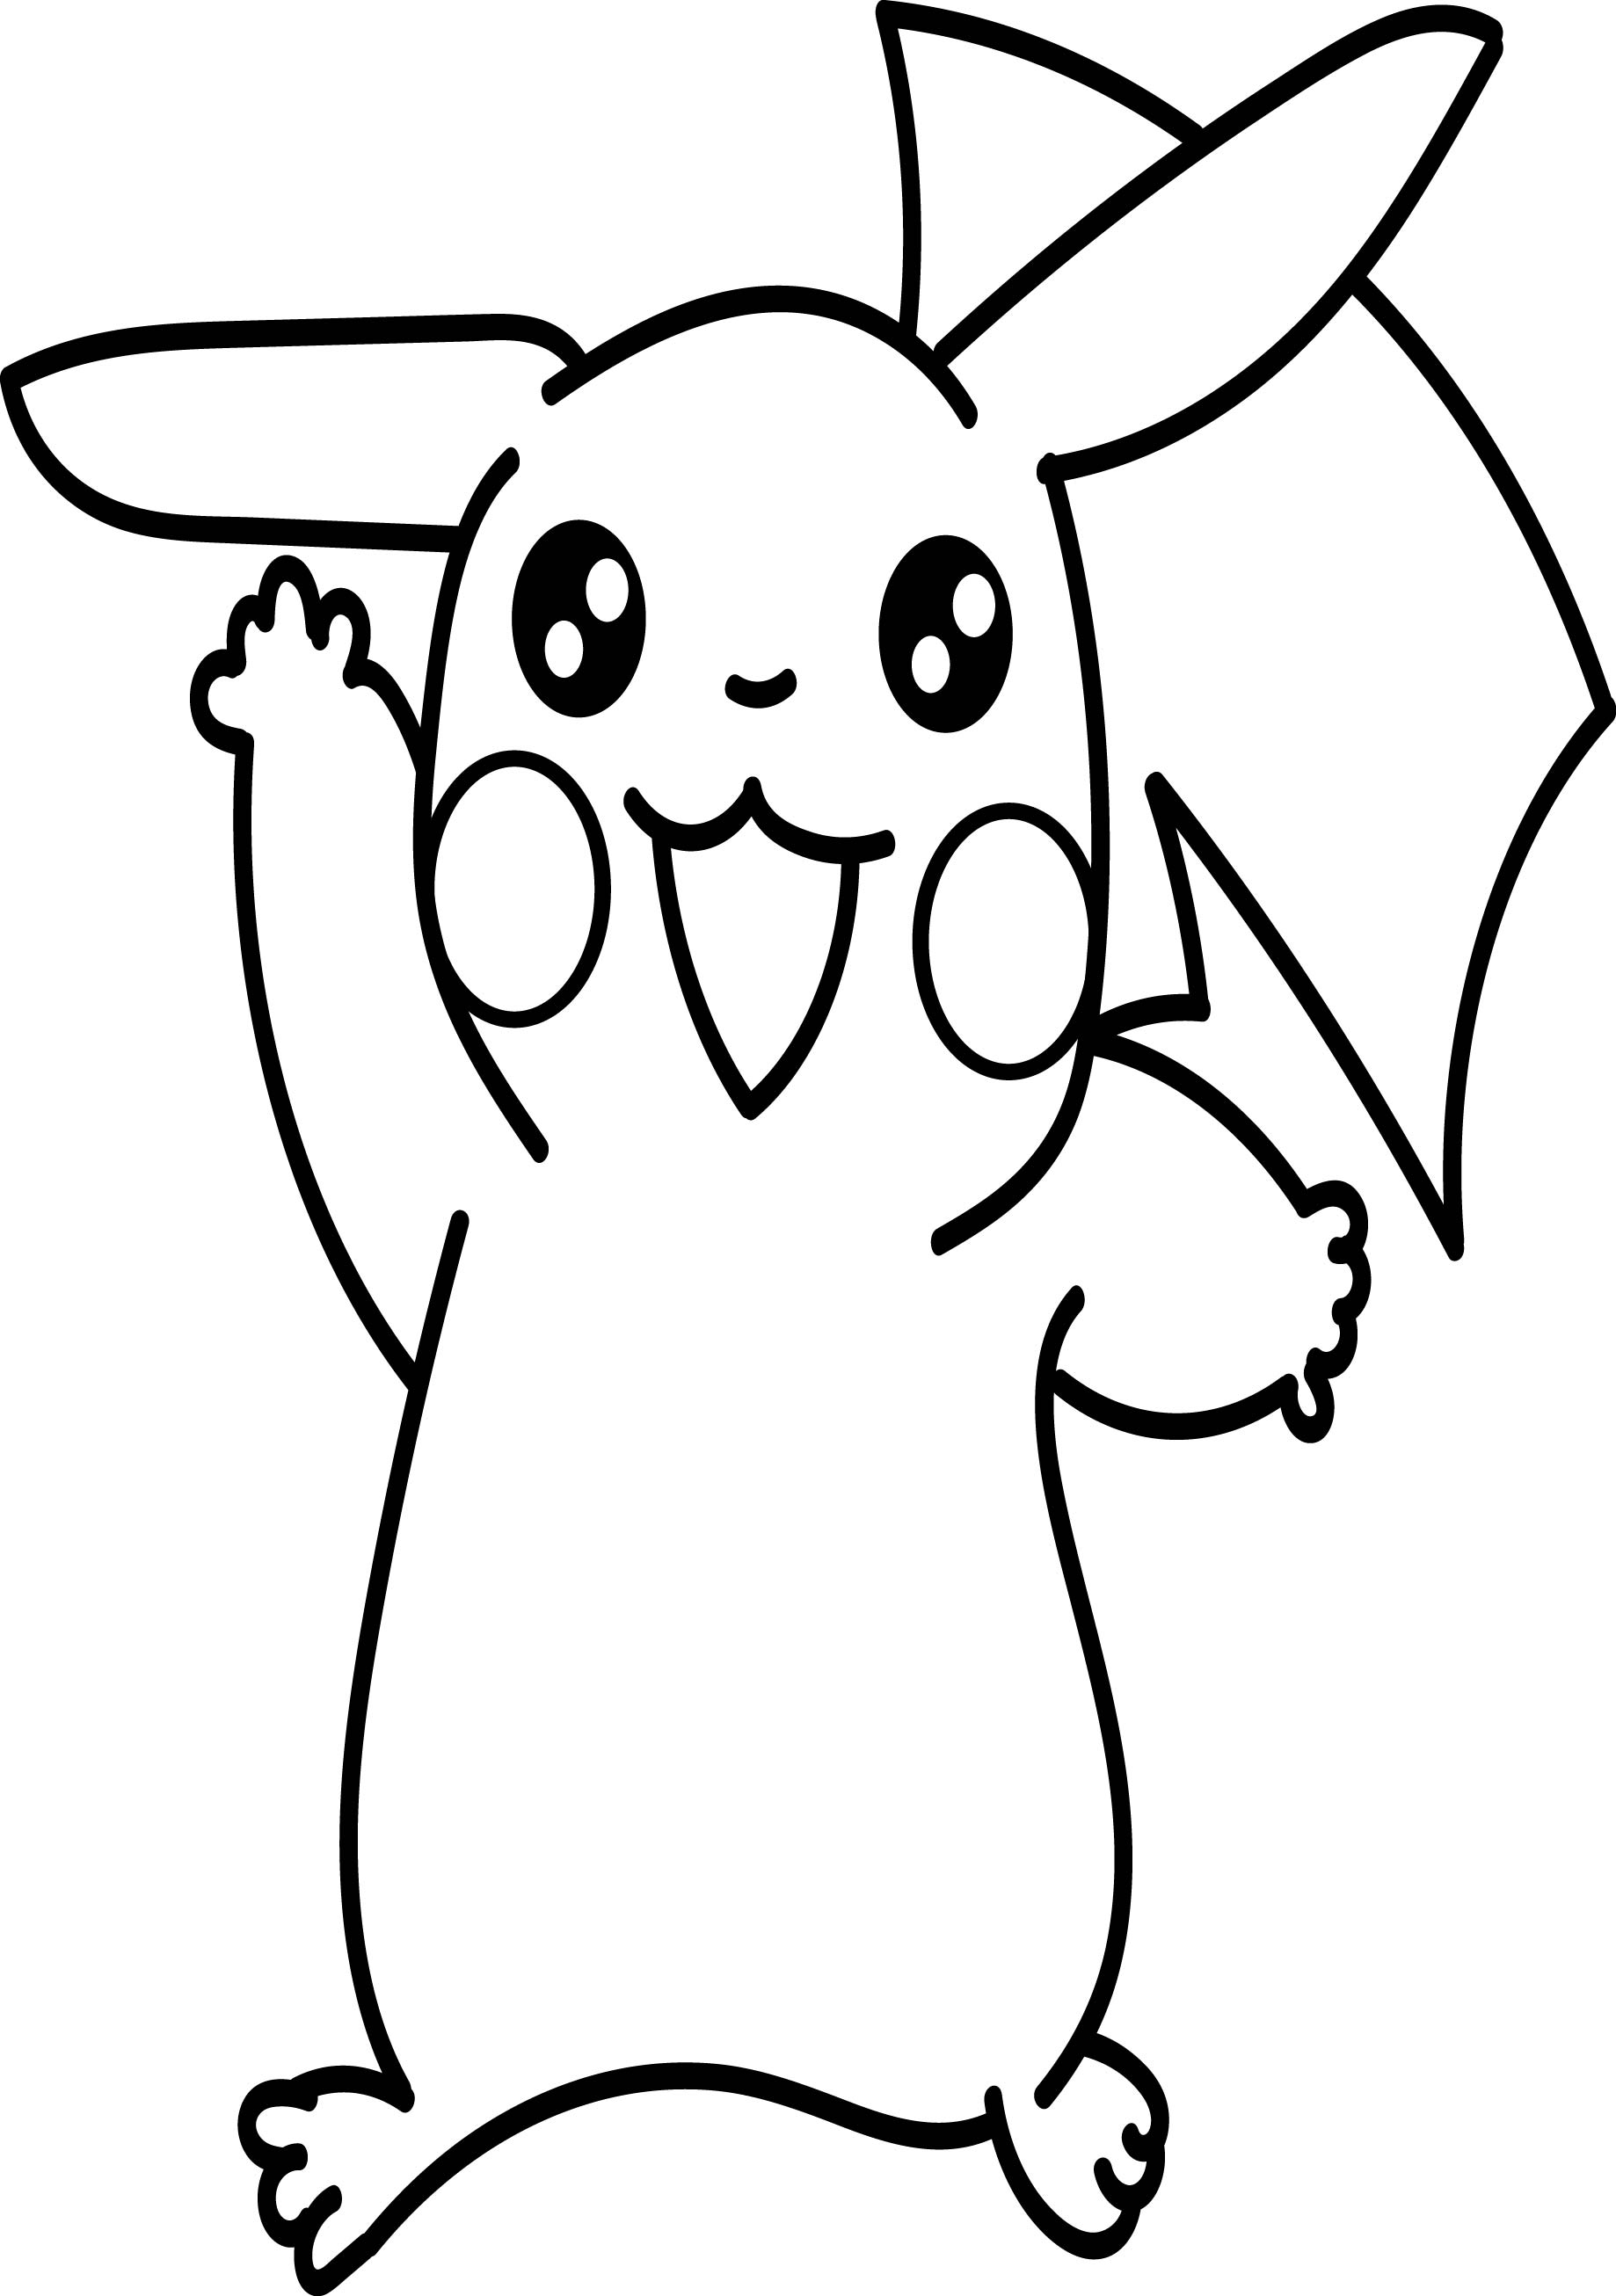 Pikachu Peace Coloring Page